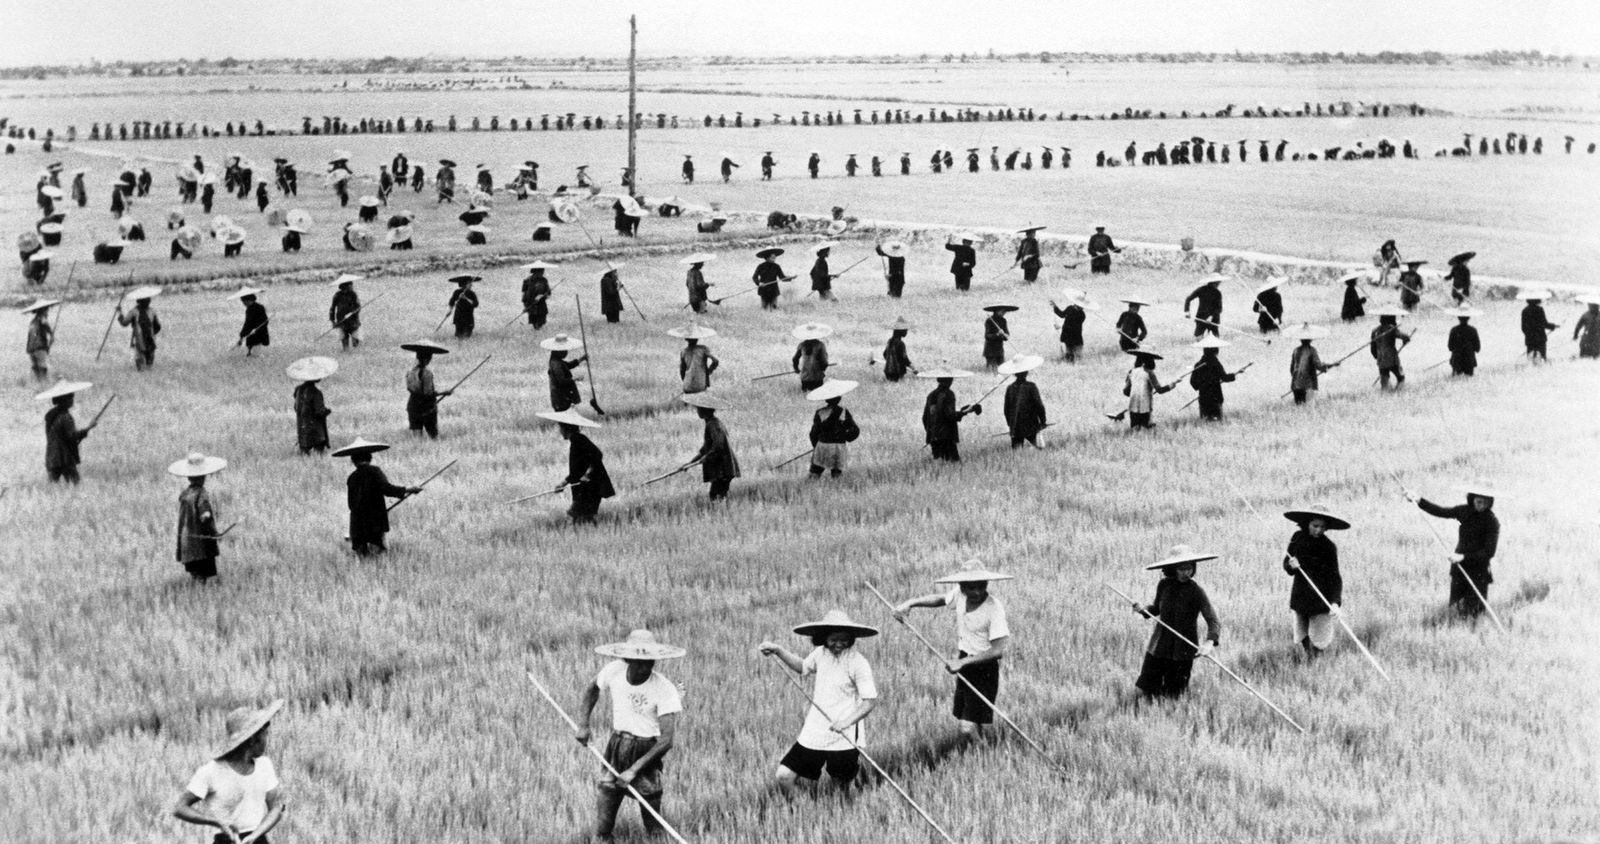 Maos Spatzenkrieg - China: Teams of peasants labouring on a communal farm during the 'Great Leap Forward' (1959 - 1961)